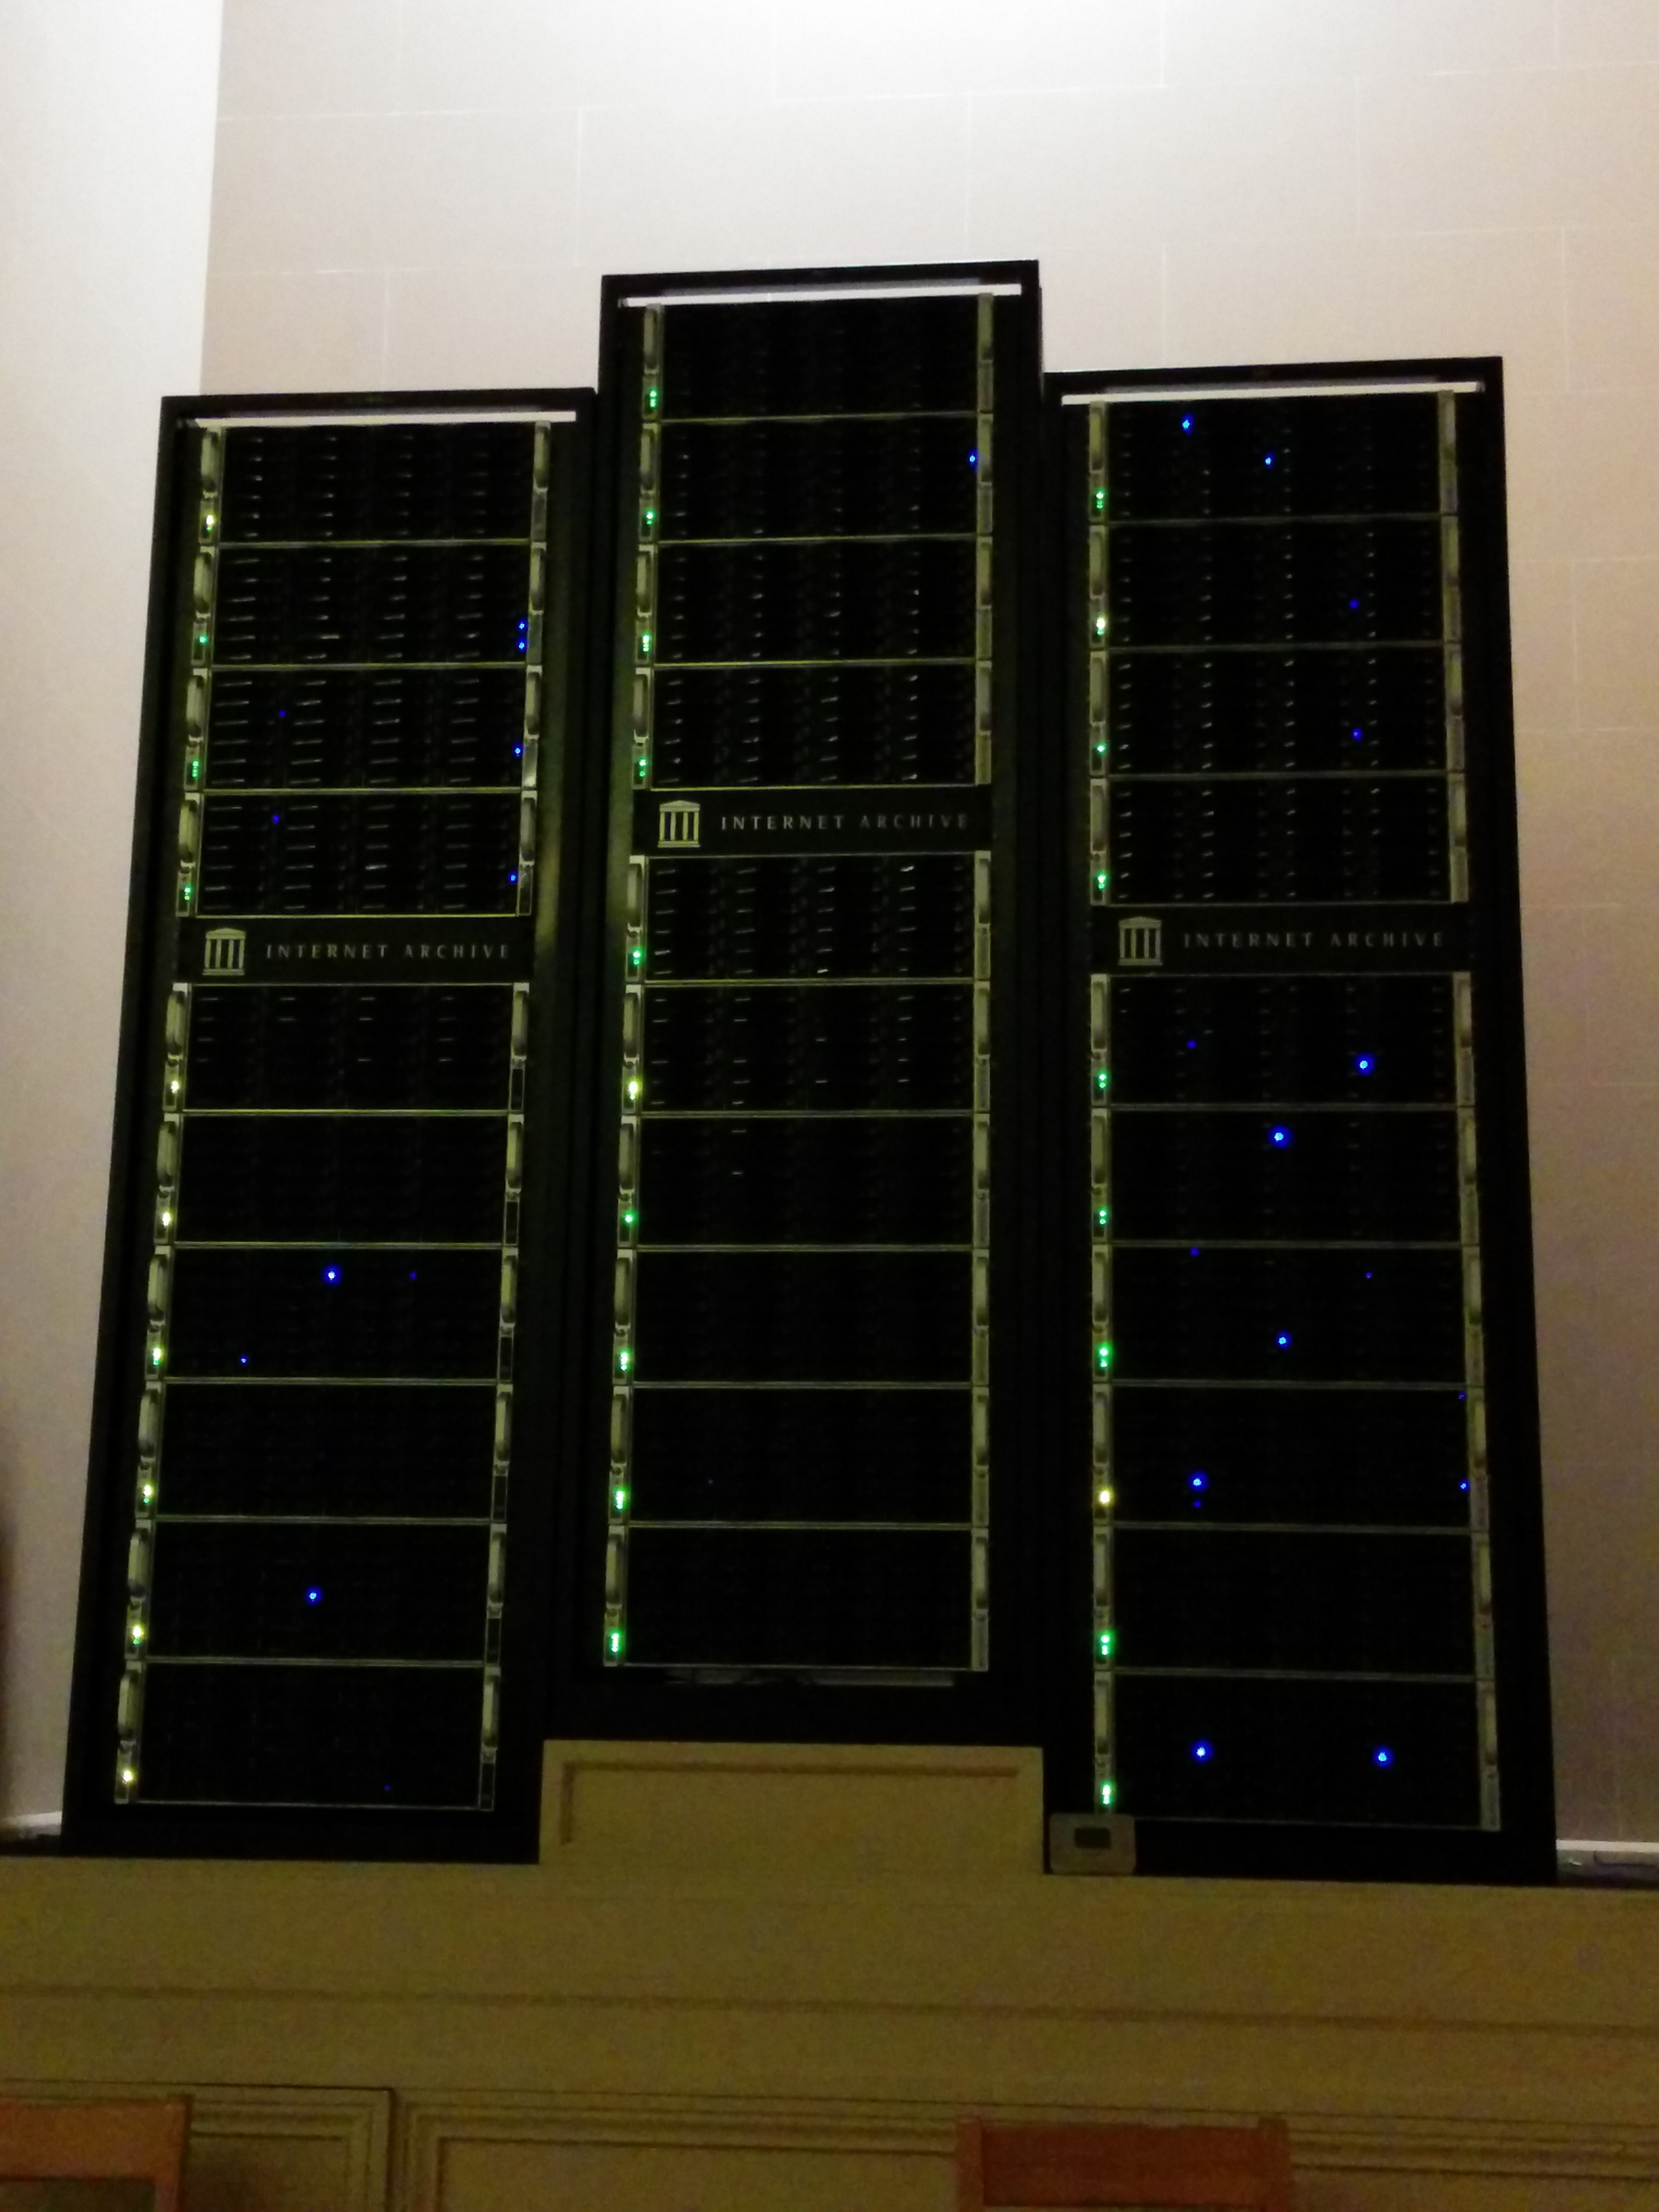 Three of the server racks that comprise archive.org.